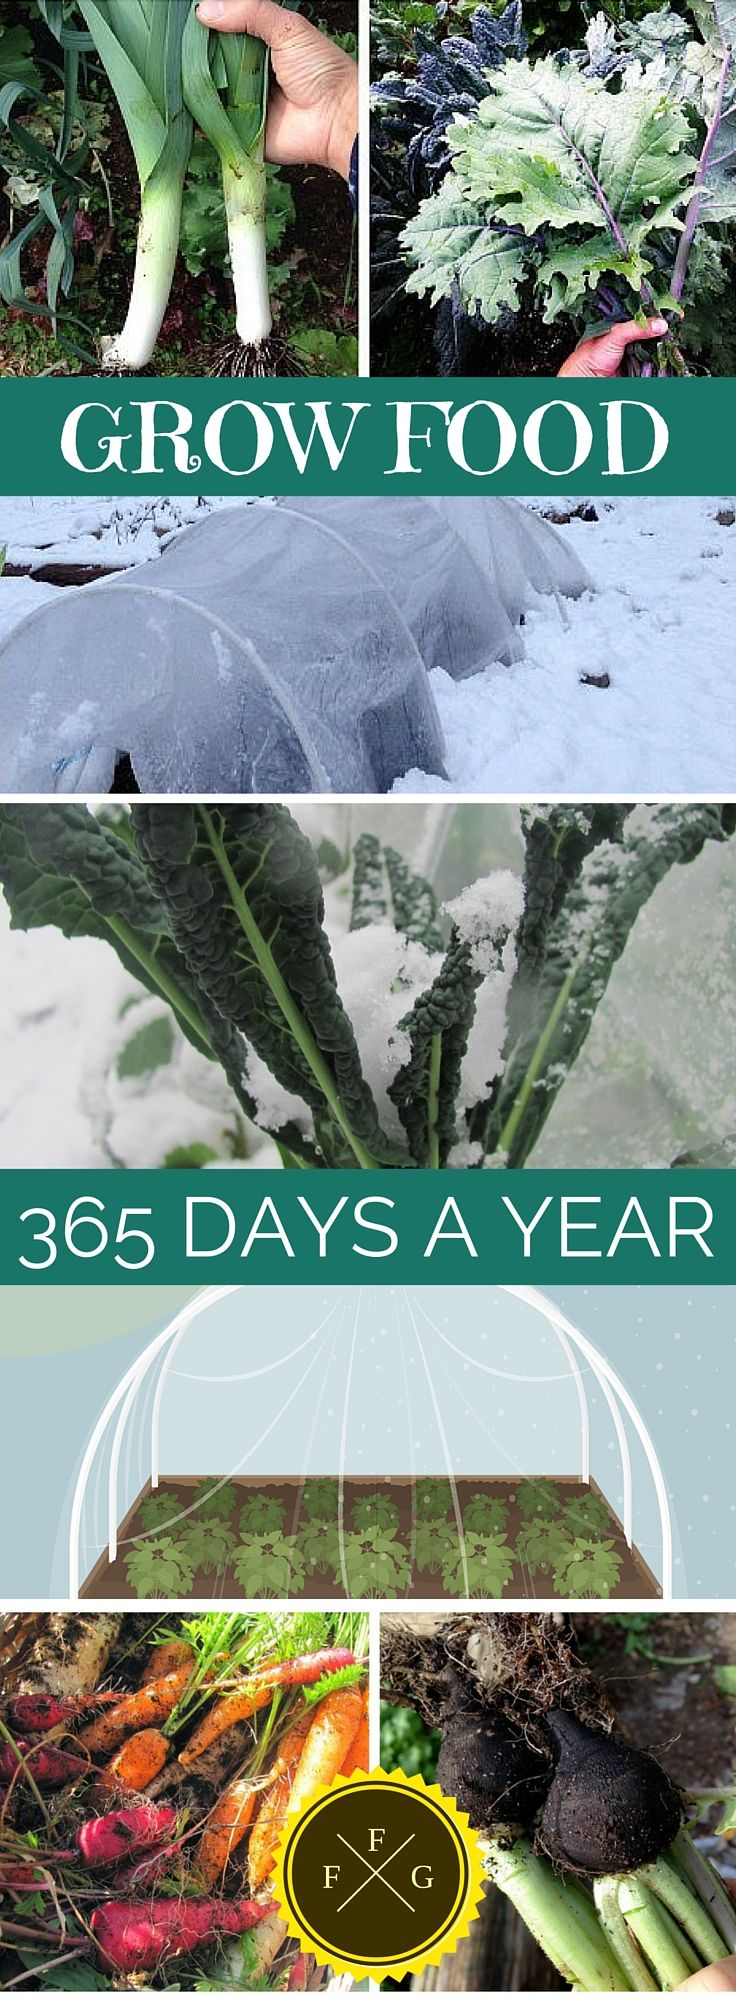 How to Grow Food Year-Round | Pinterest | Rounding, Food and Gardens